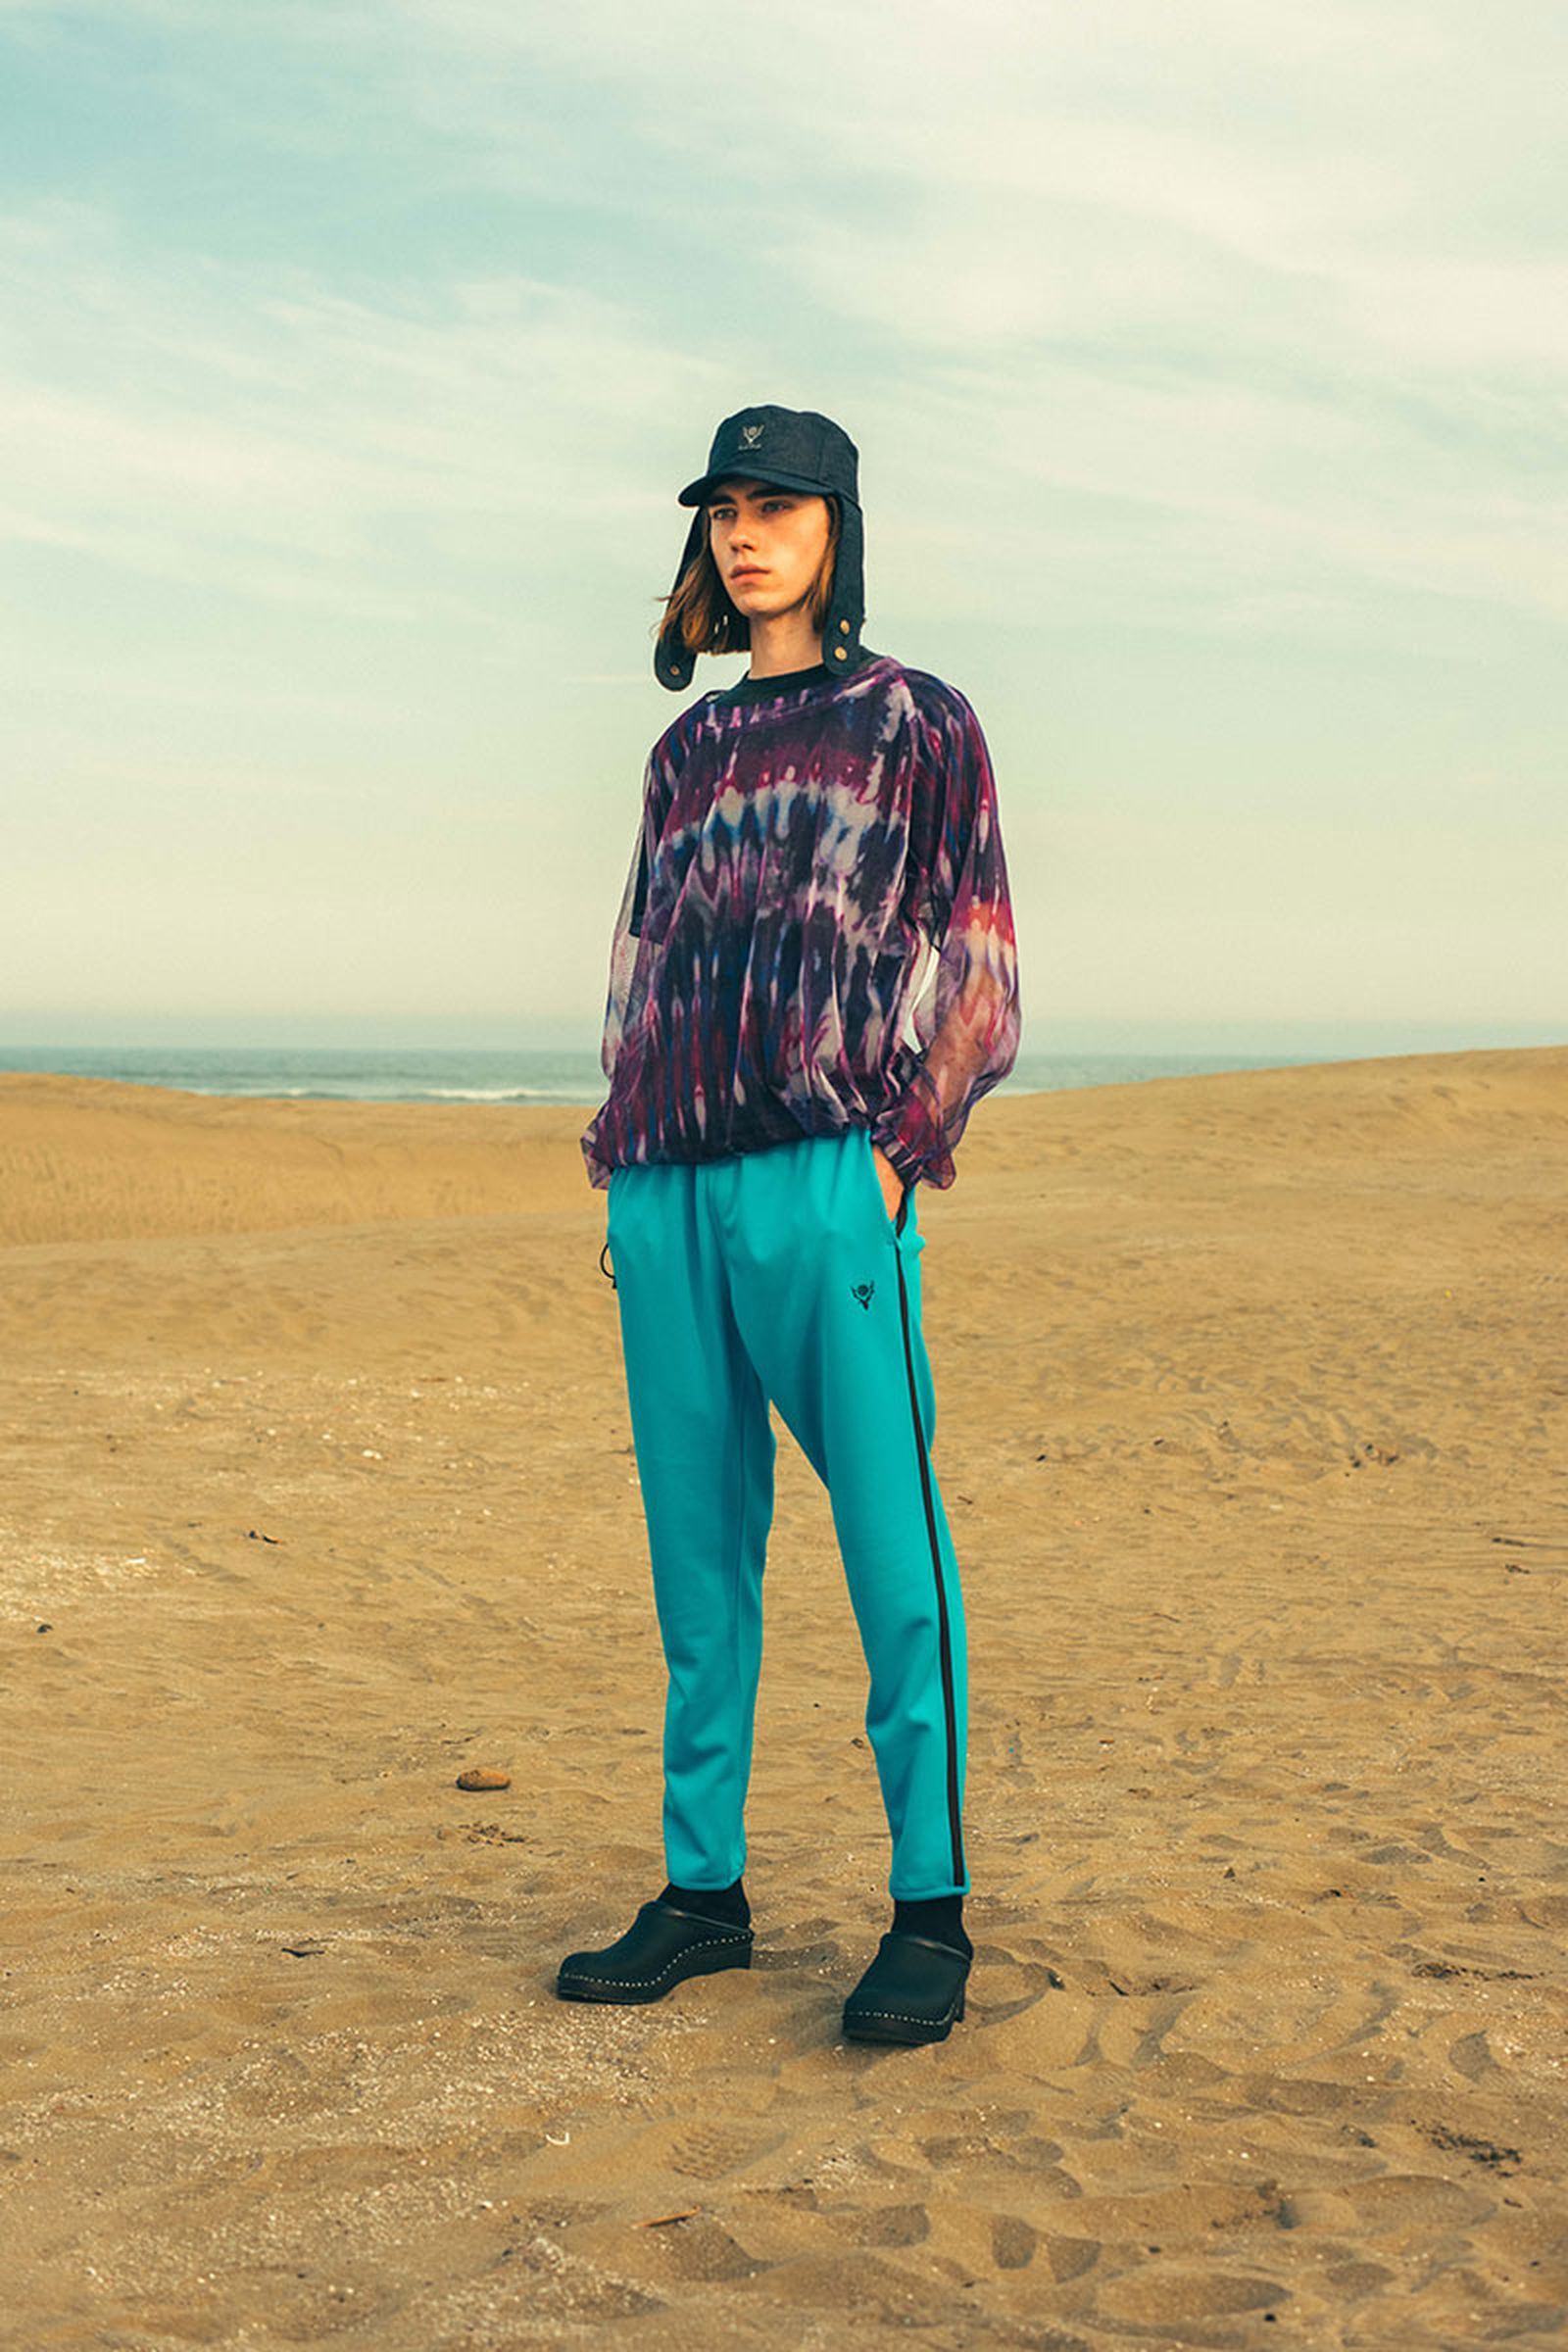 south2 west8 ss20 lookbook Keizo Shimizu nepenthes